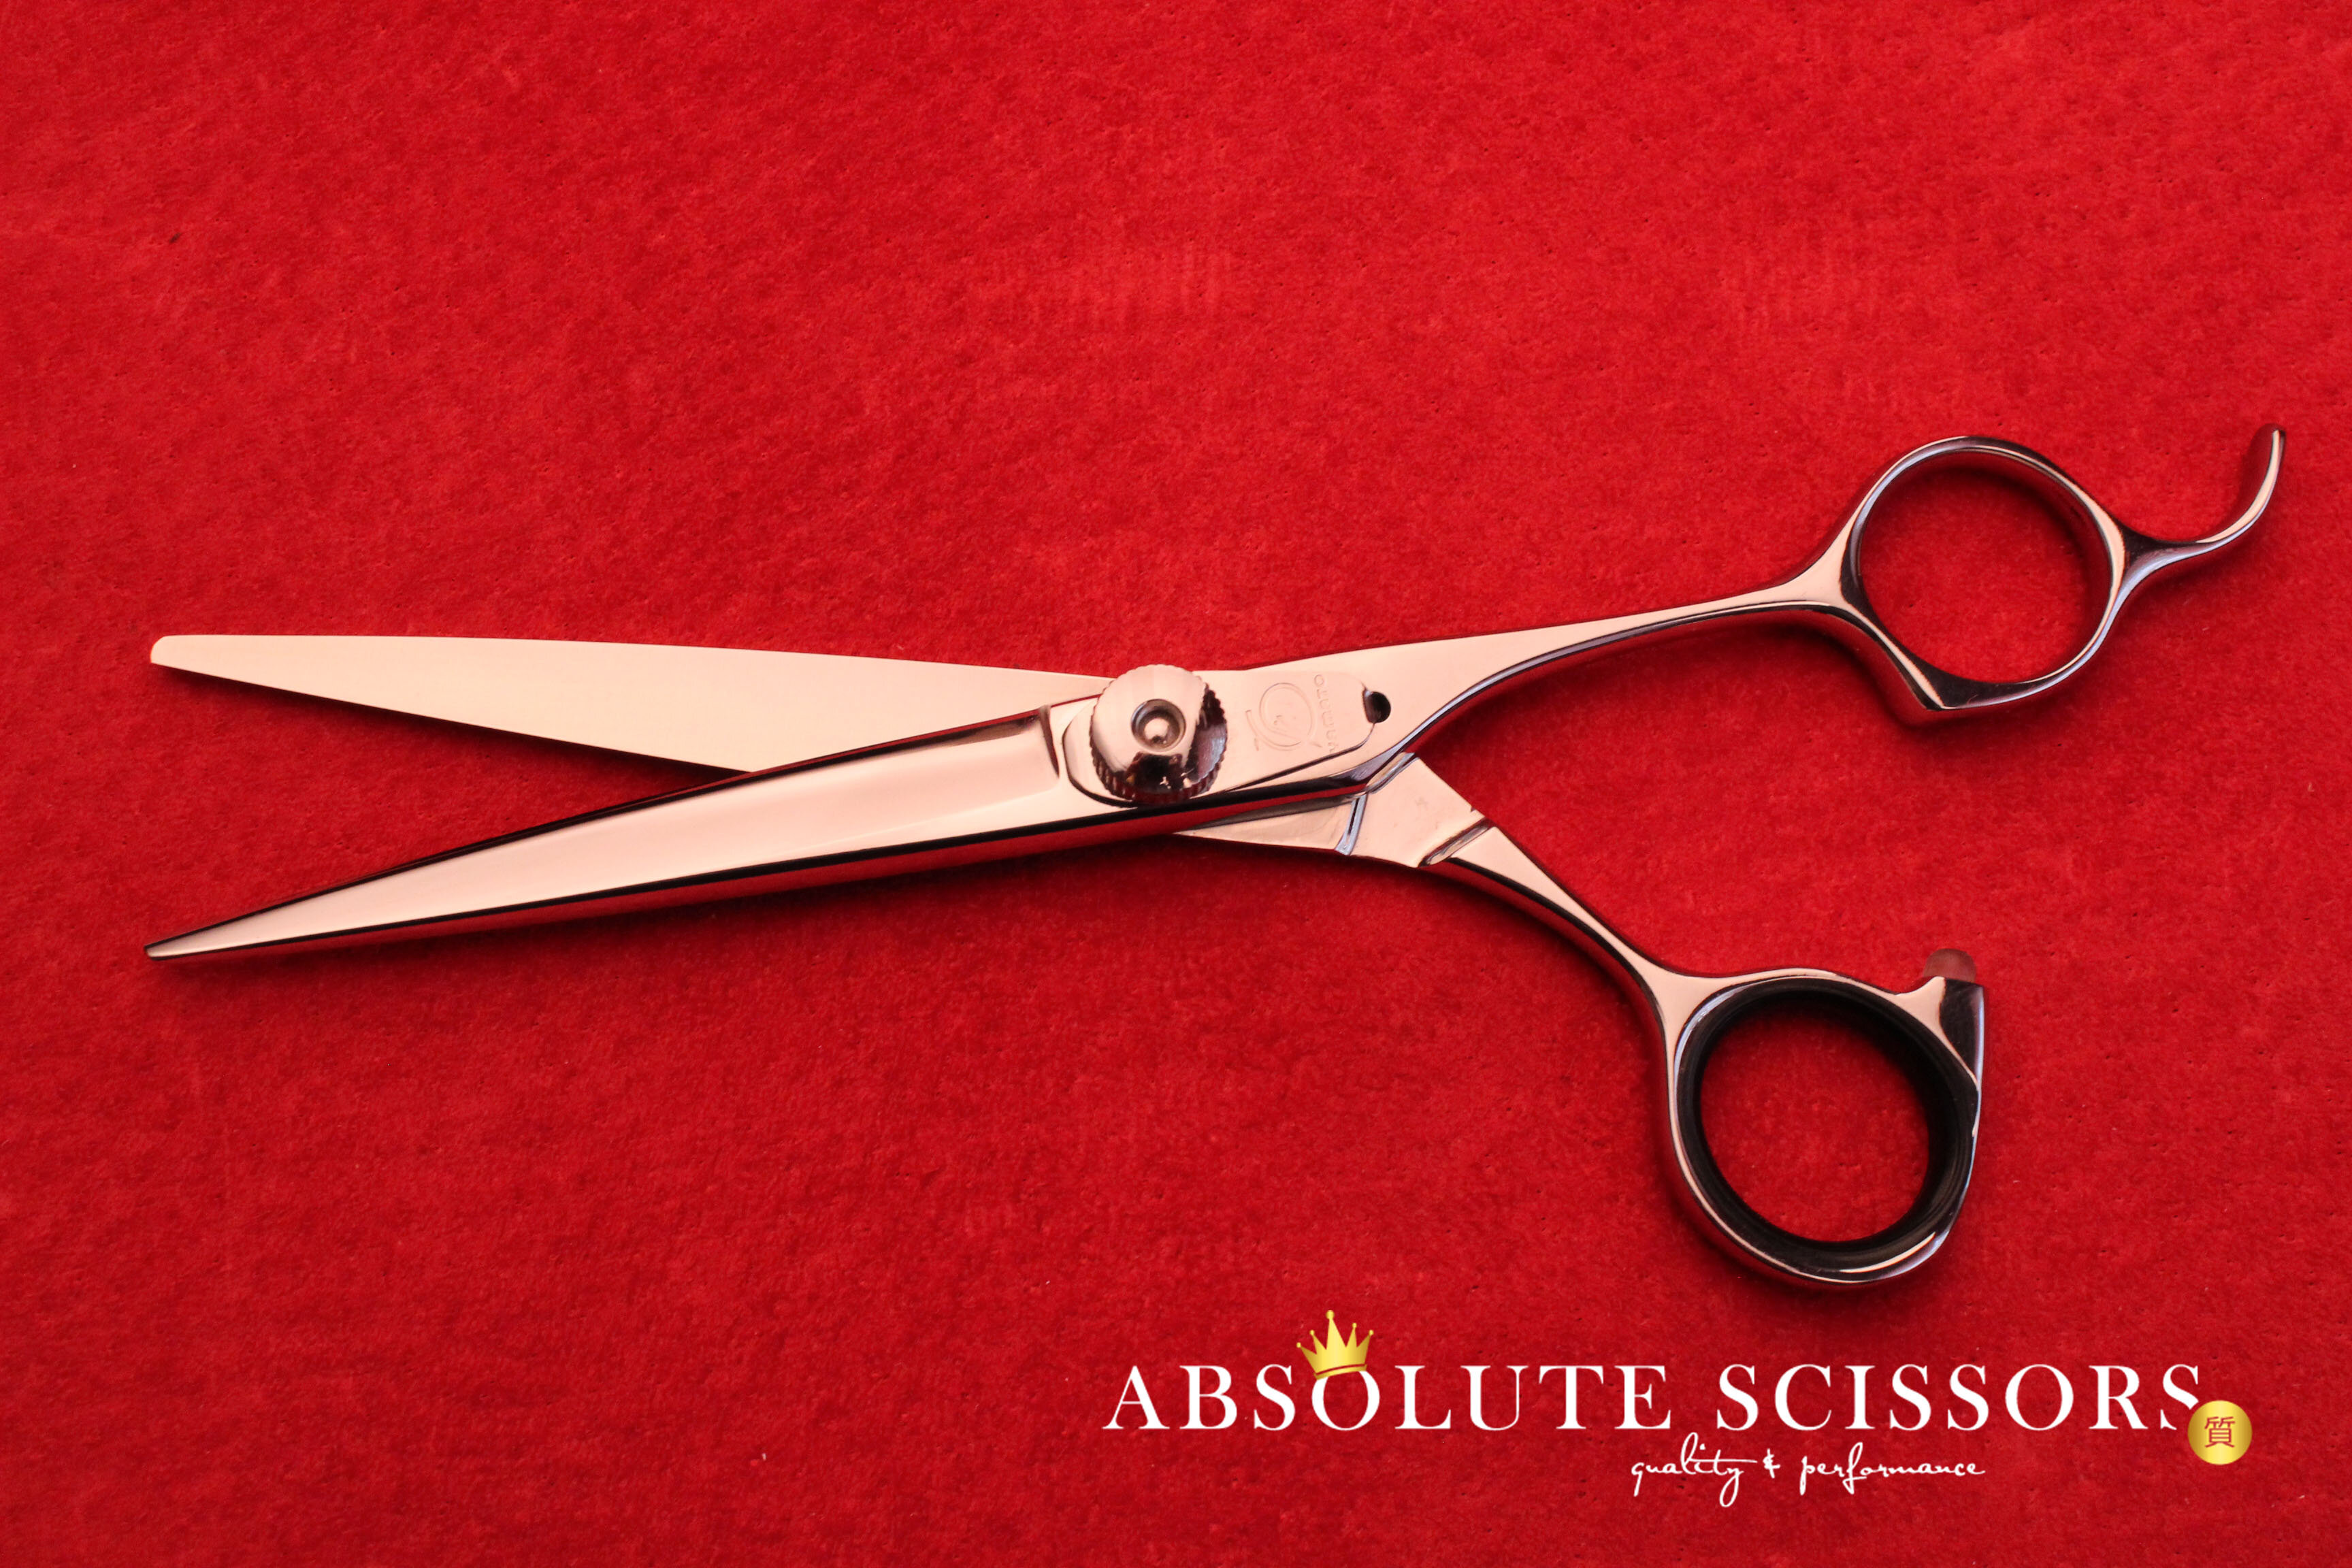 A60 3628 Yamato hair scissors size 6 inches cobalt